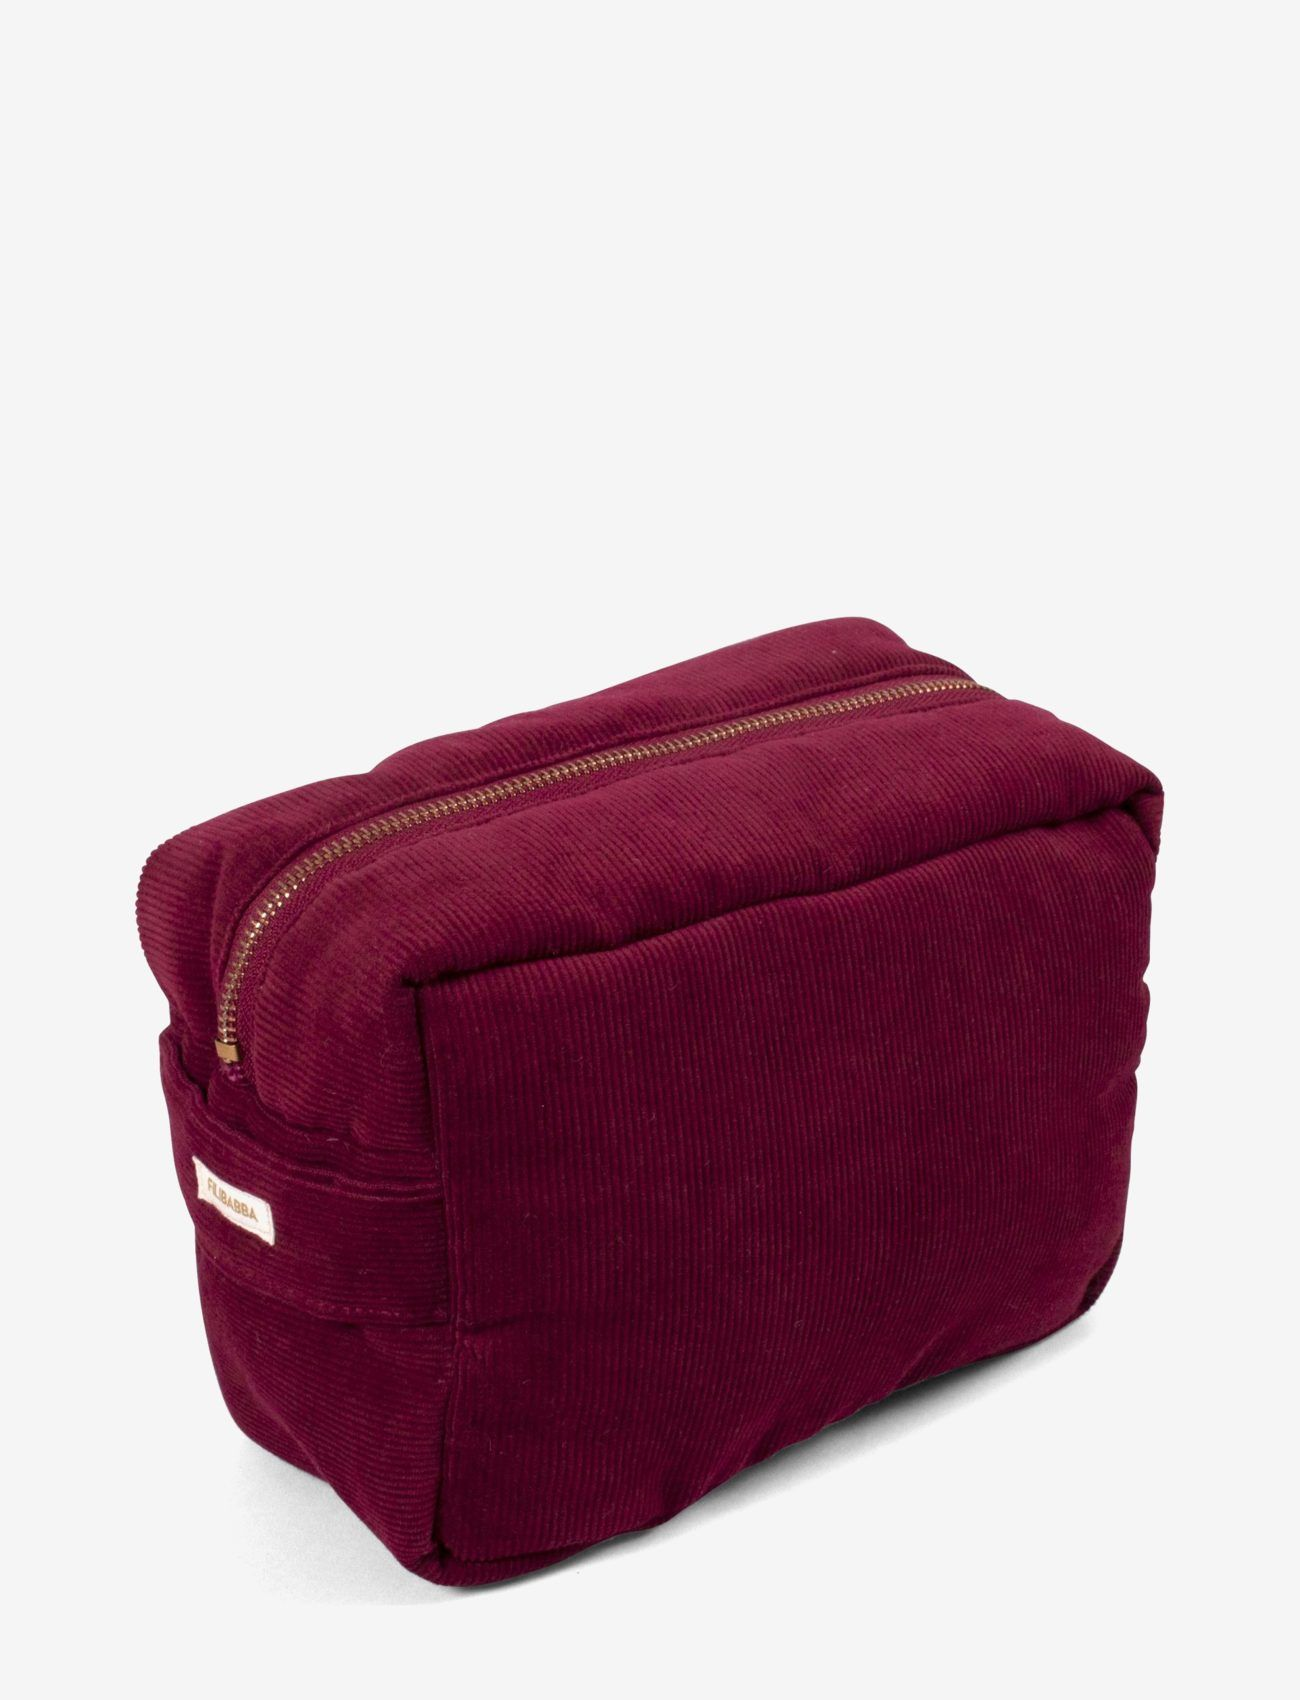 Toilet bag (small) - corduroy - deeply red